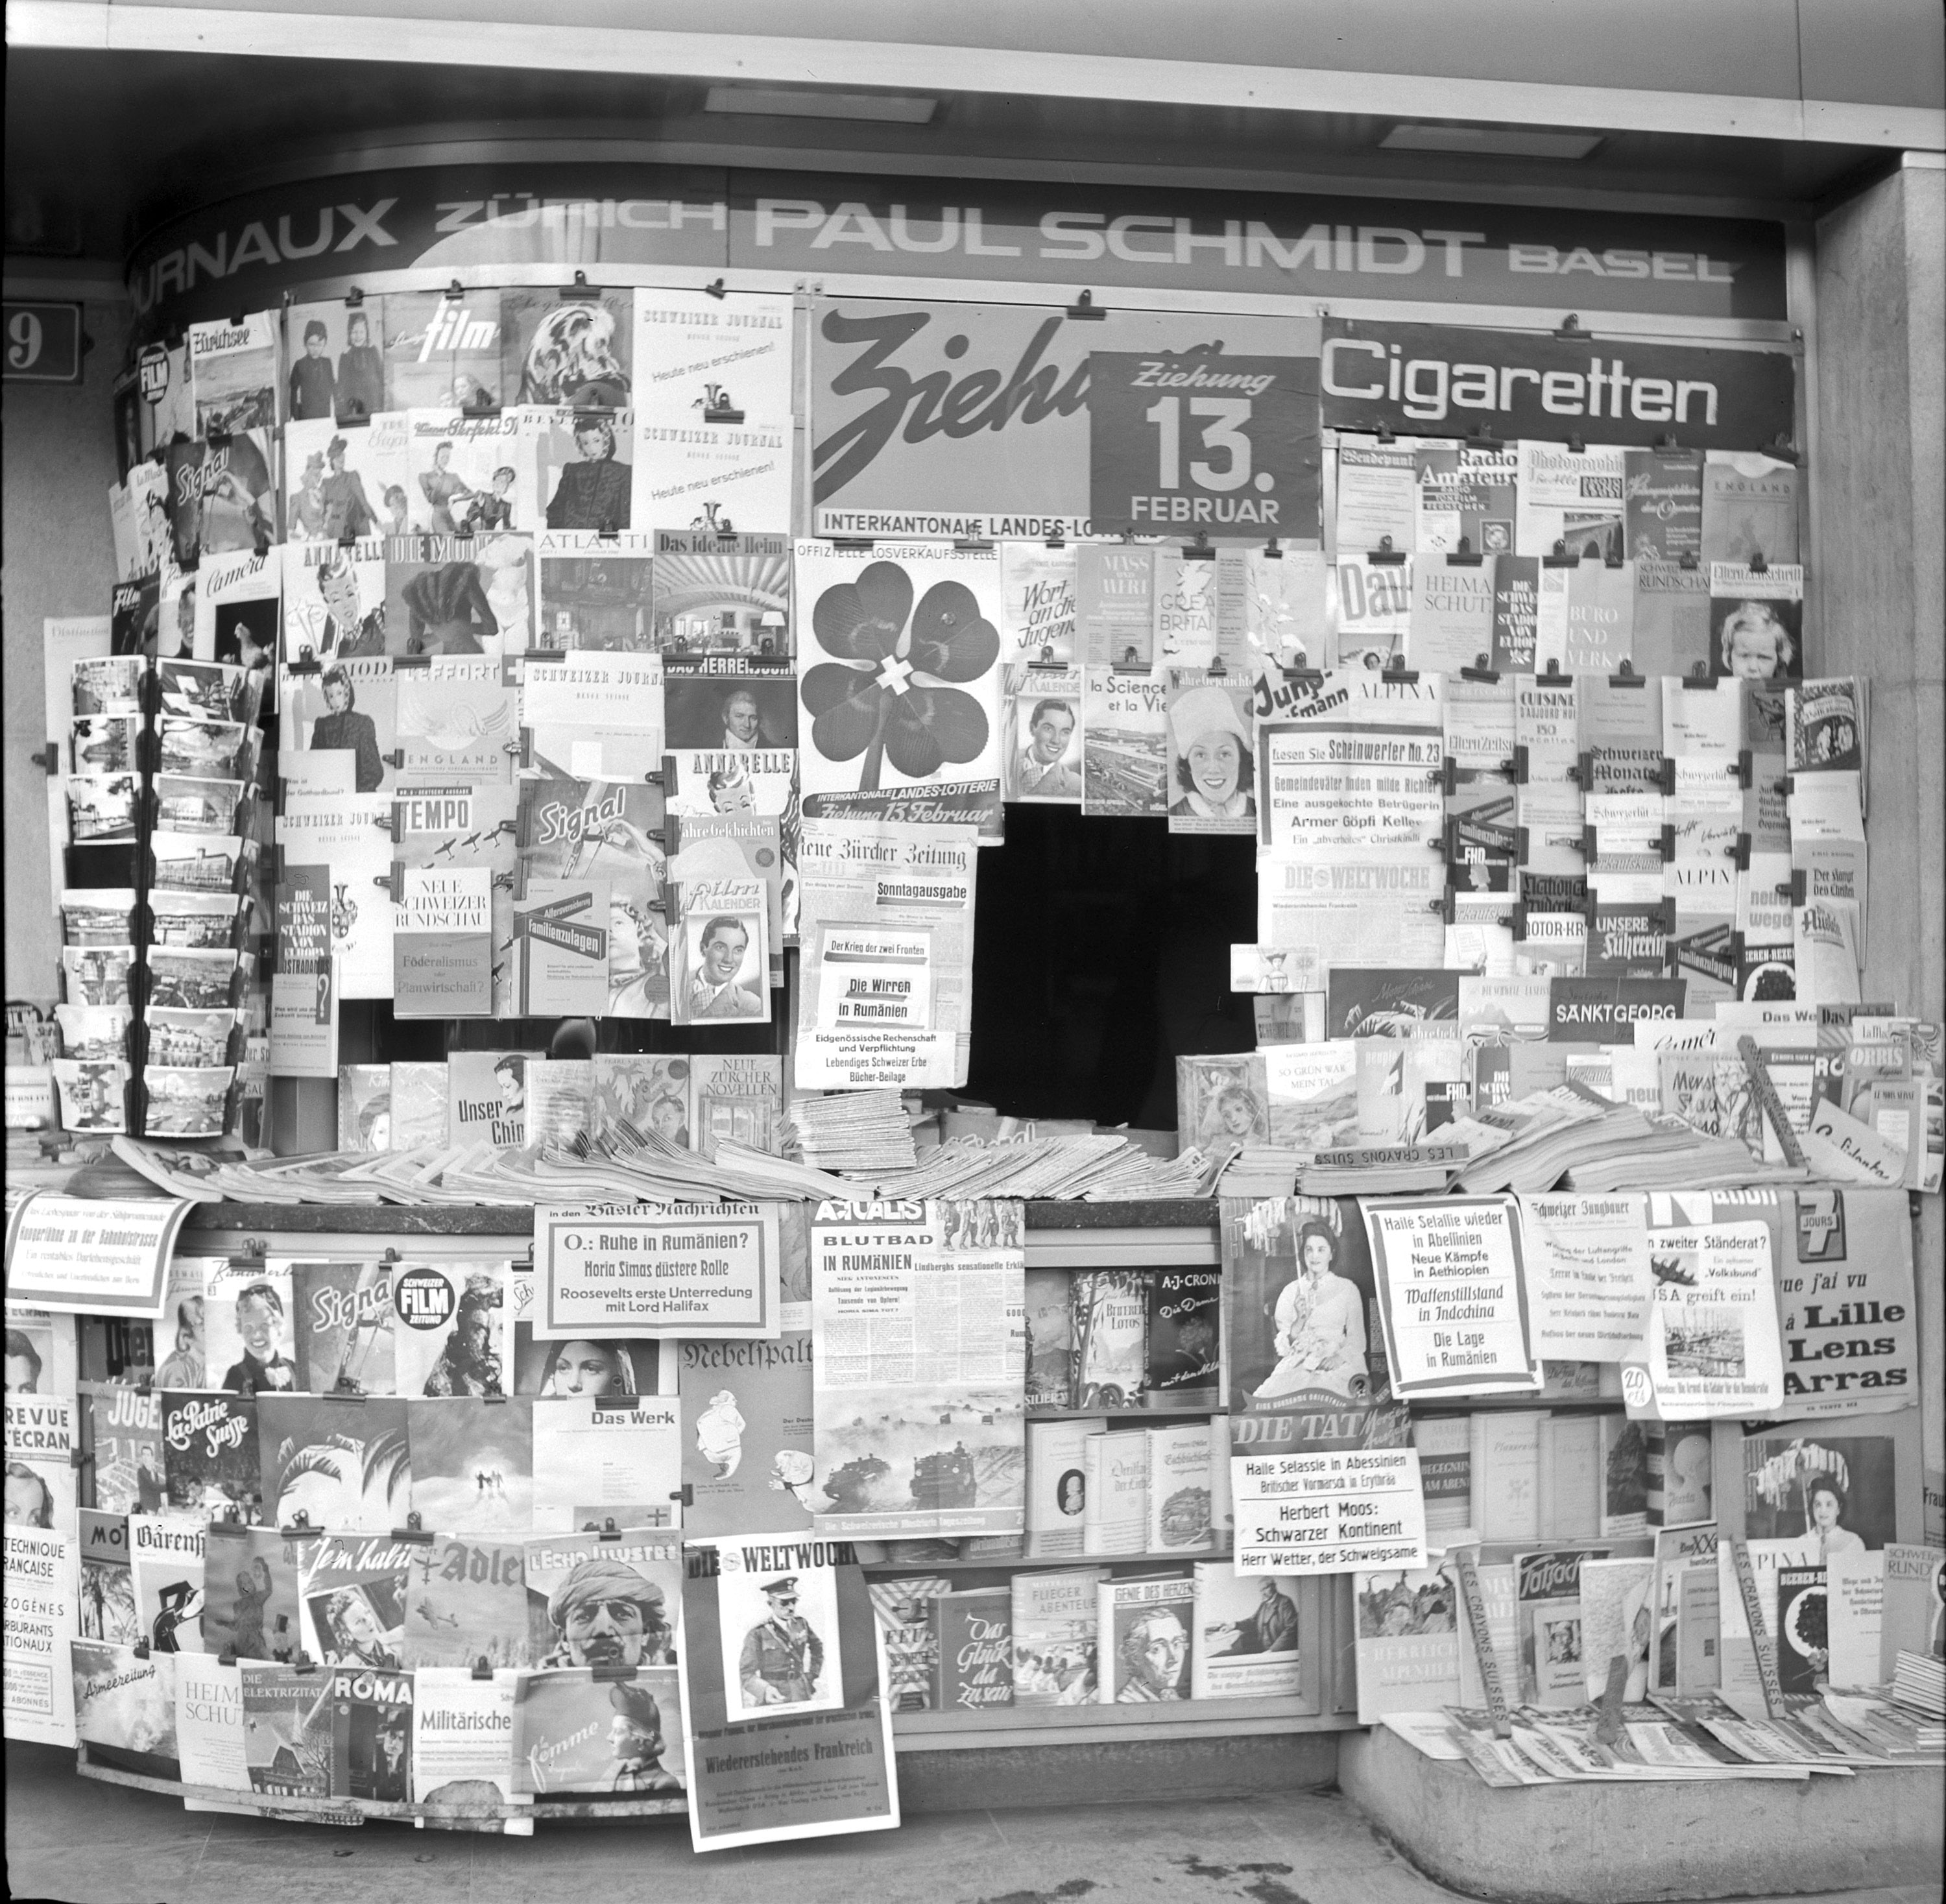 Kiosk in Zurich, circa 1941  During the Second World War, the Swiss media was subject to censorship. Orientated towards an international audience, the SWS was closely watched. (Student: Grégoire Luisier)